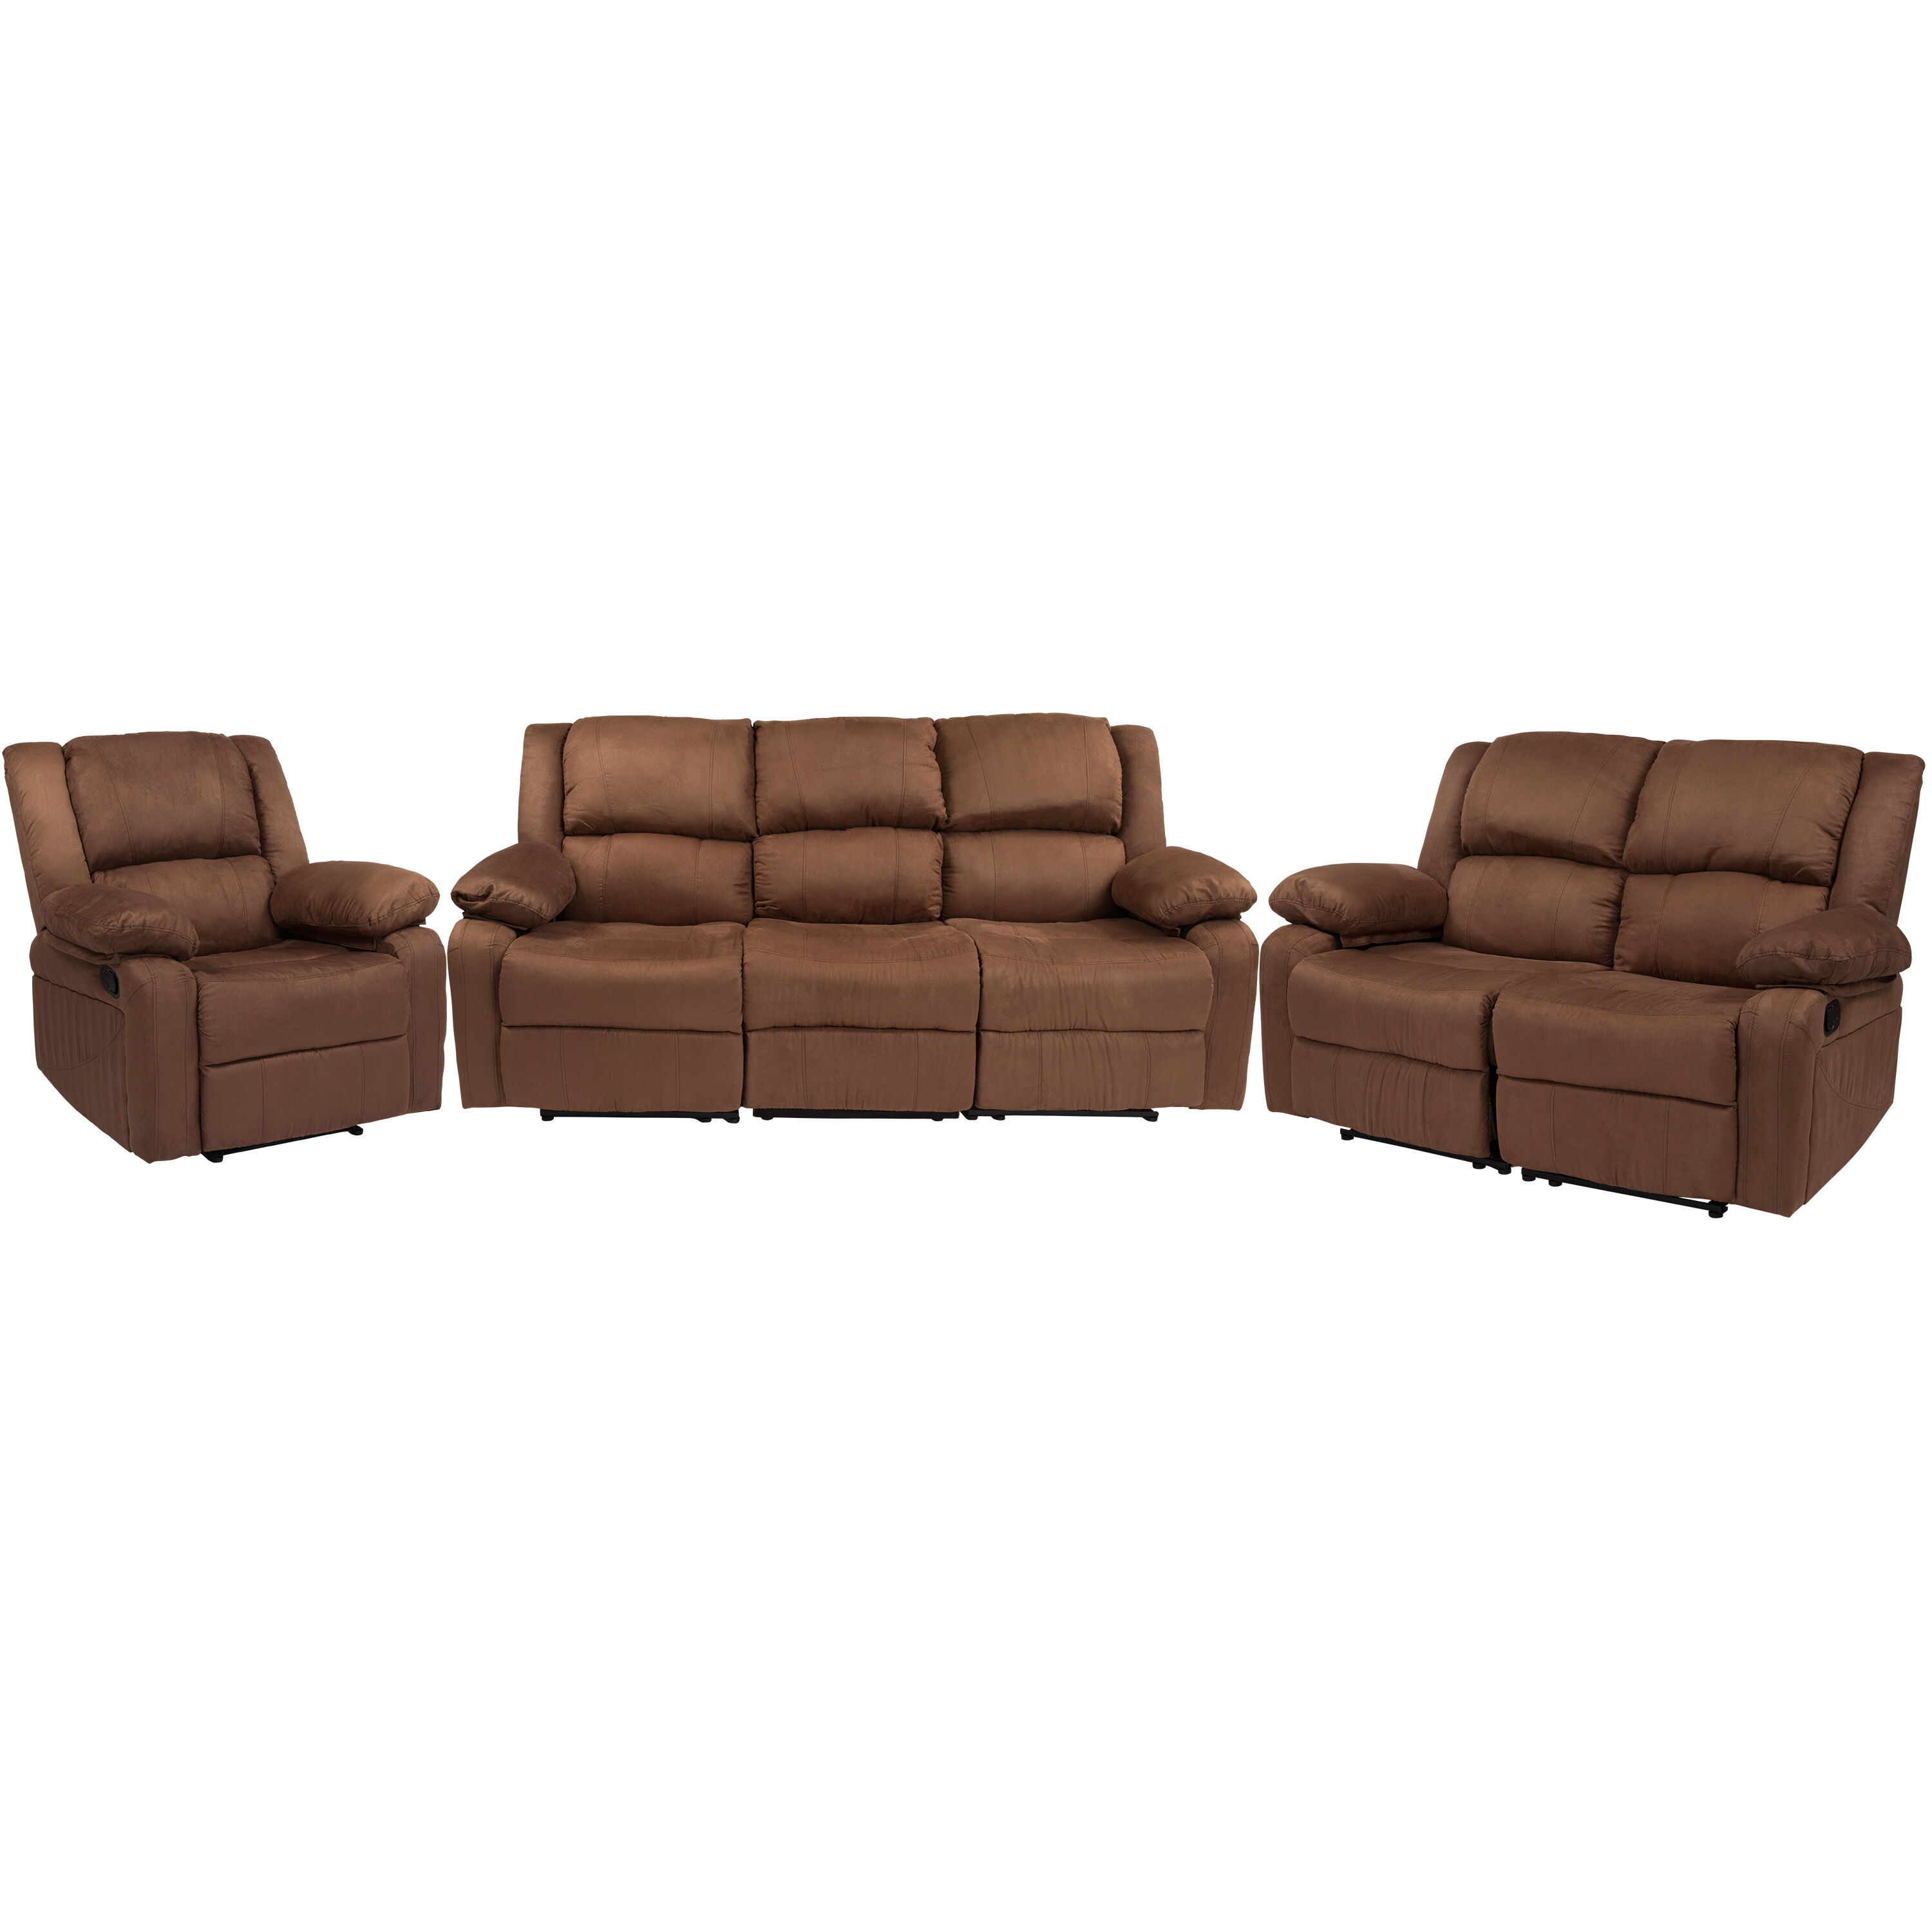 ... Our Harmony Series Chocolate Brown Microfiber Reclining Sofa Set Is On  Sale Now.